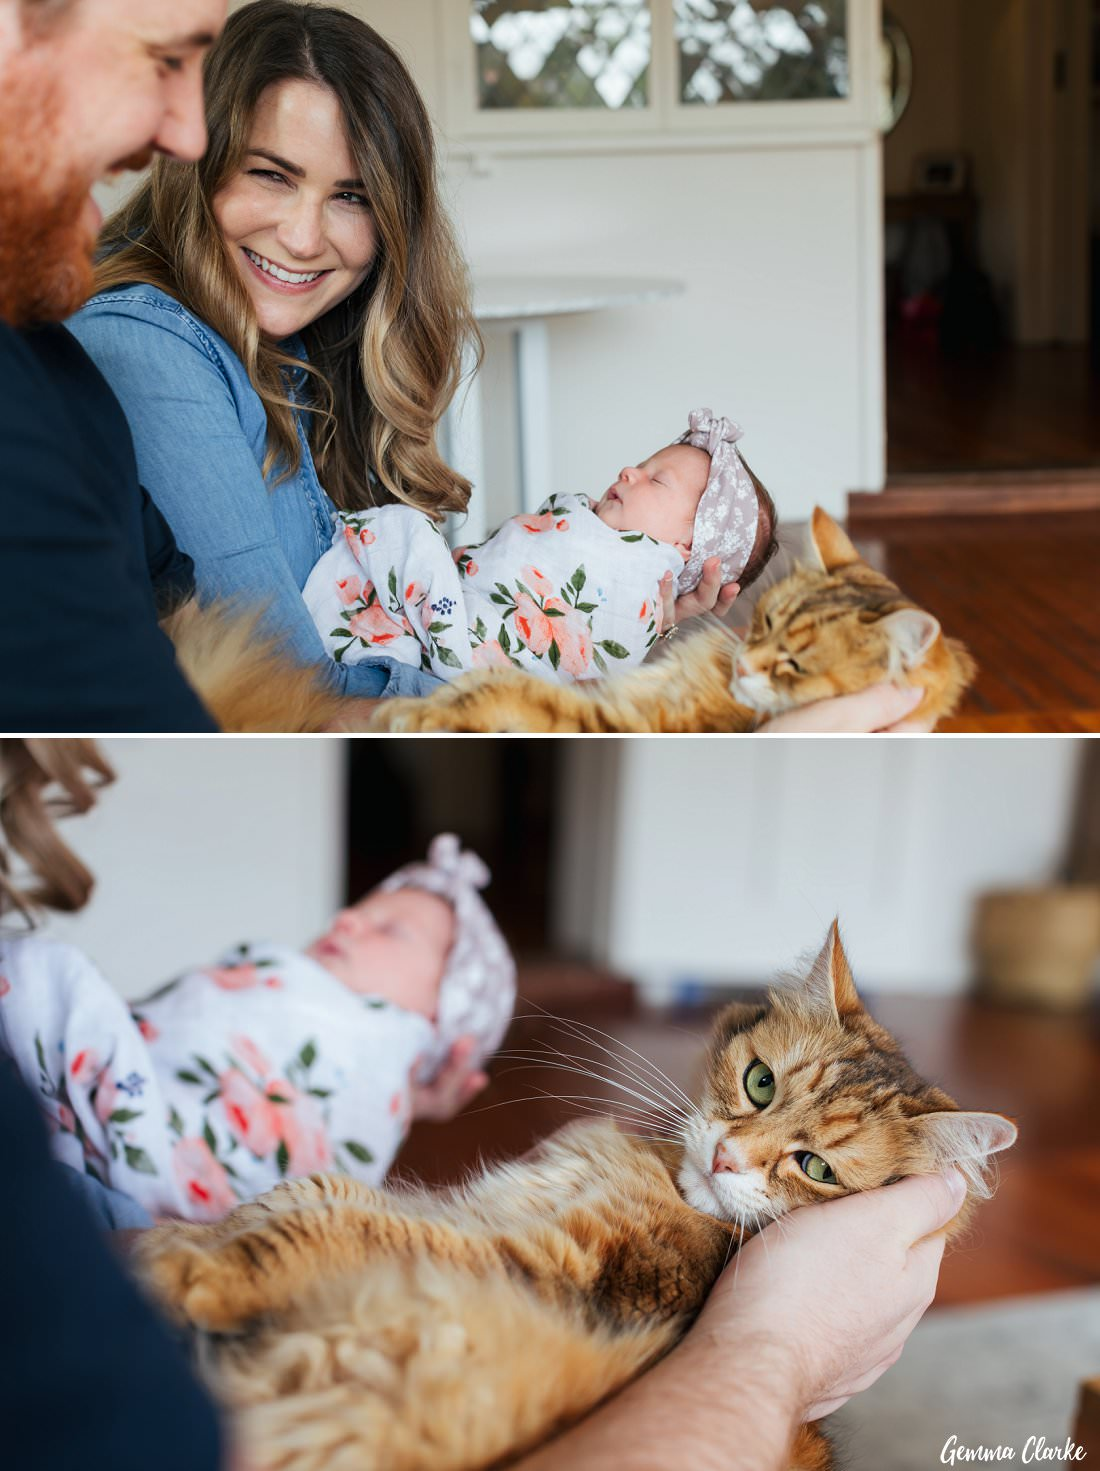 Your furbaby can make an appearance for your At Home Newborn Photos